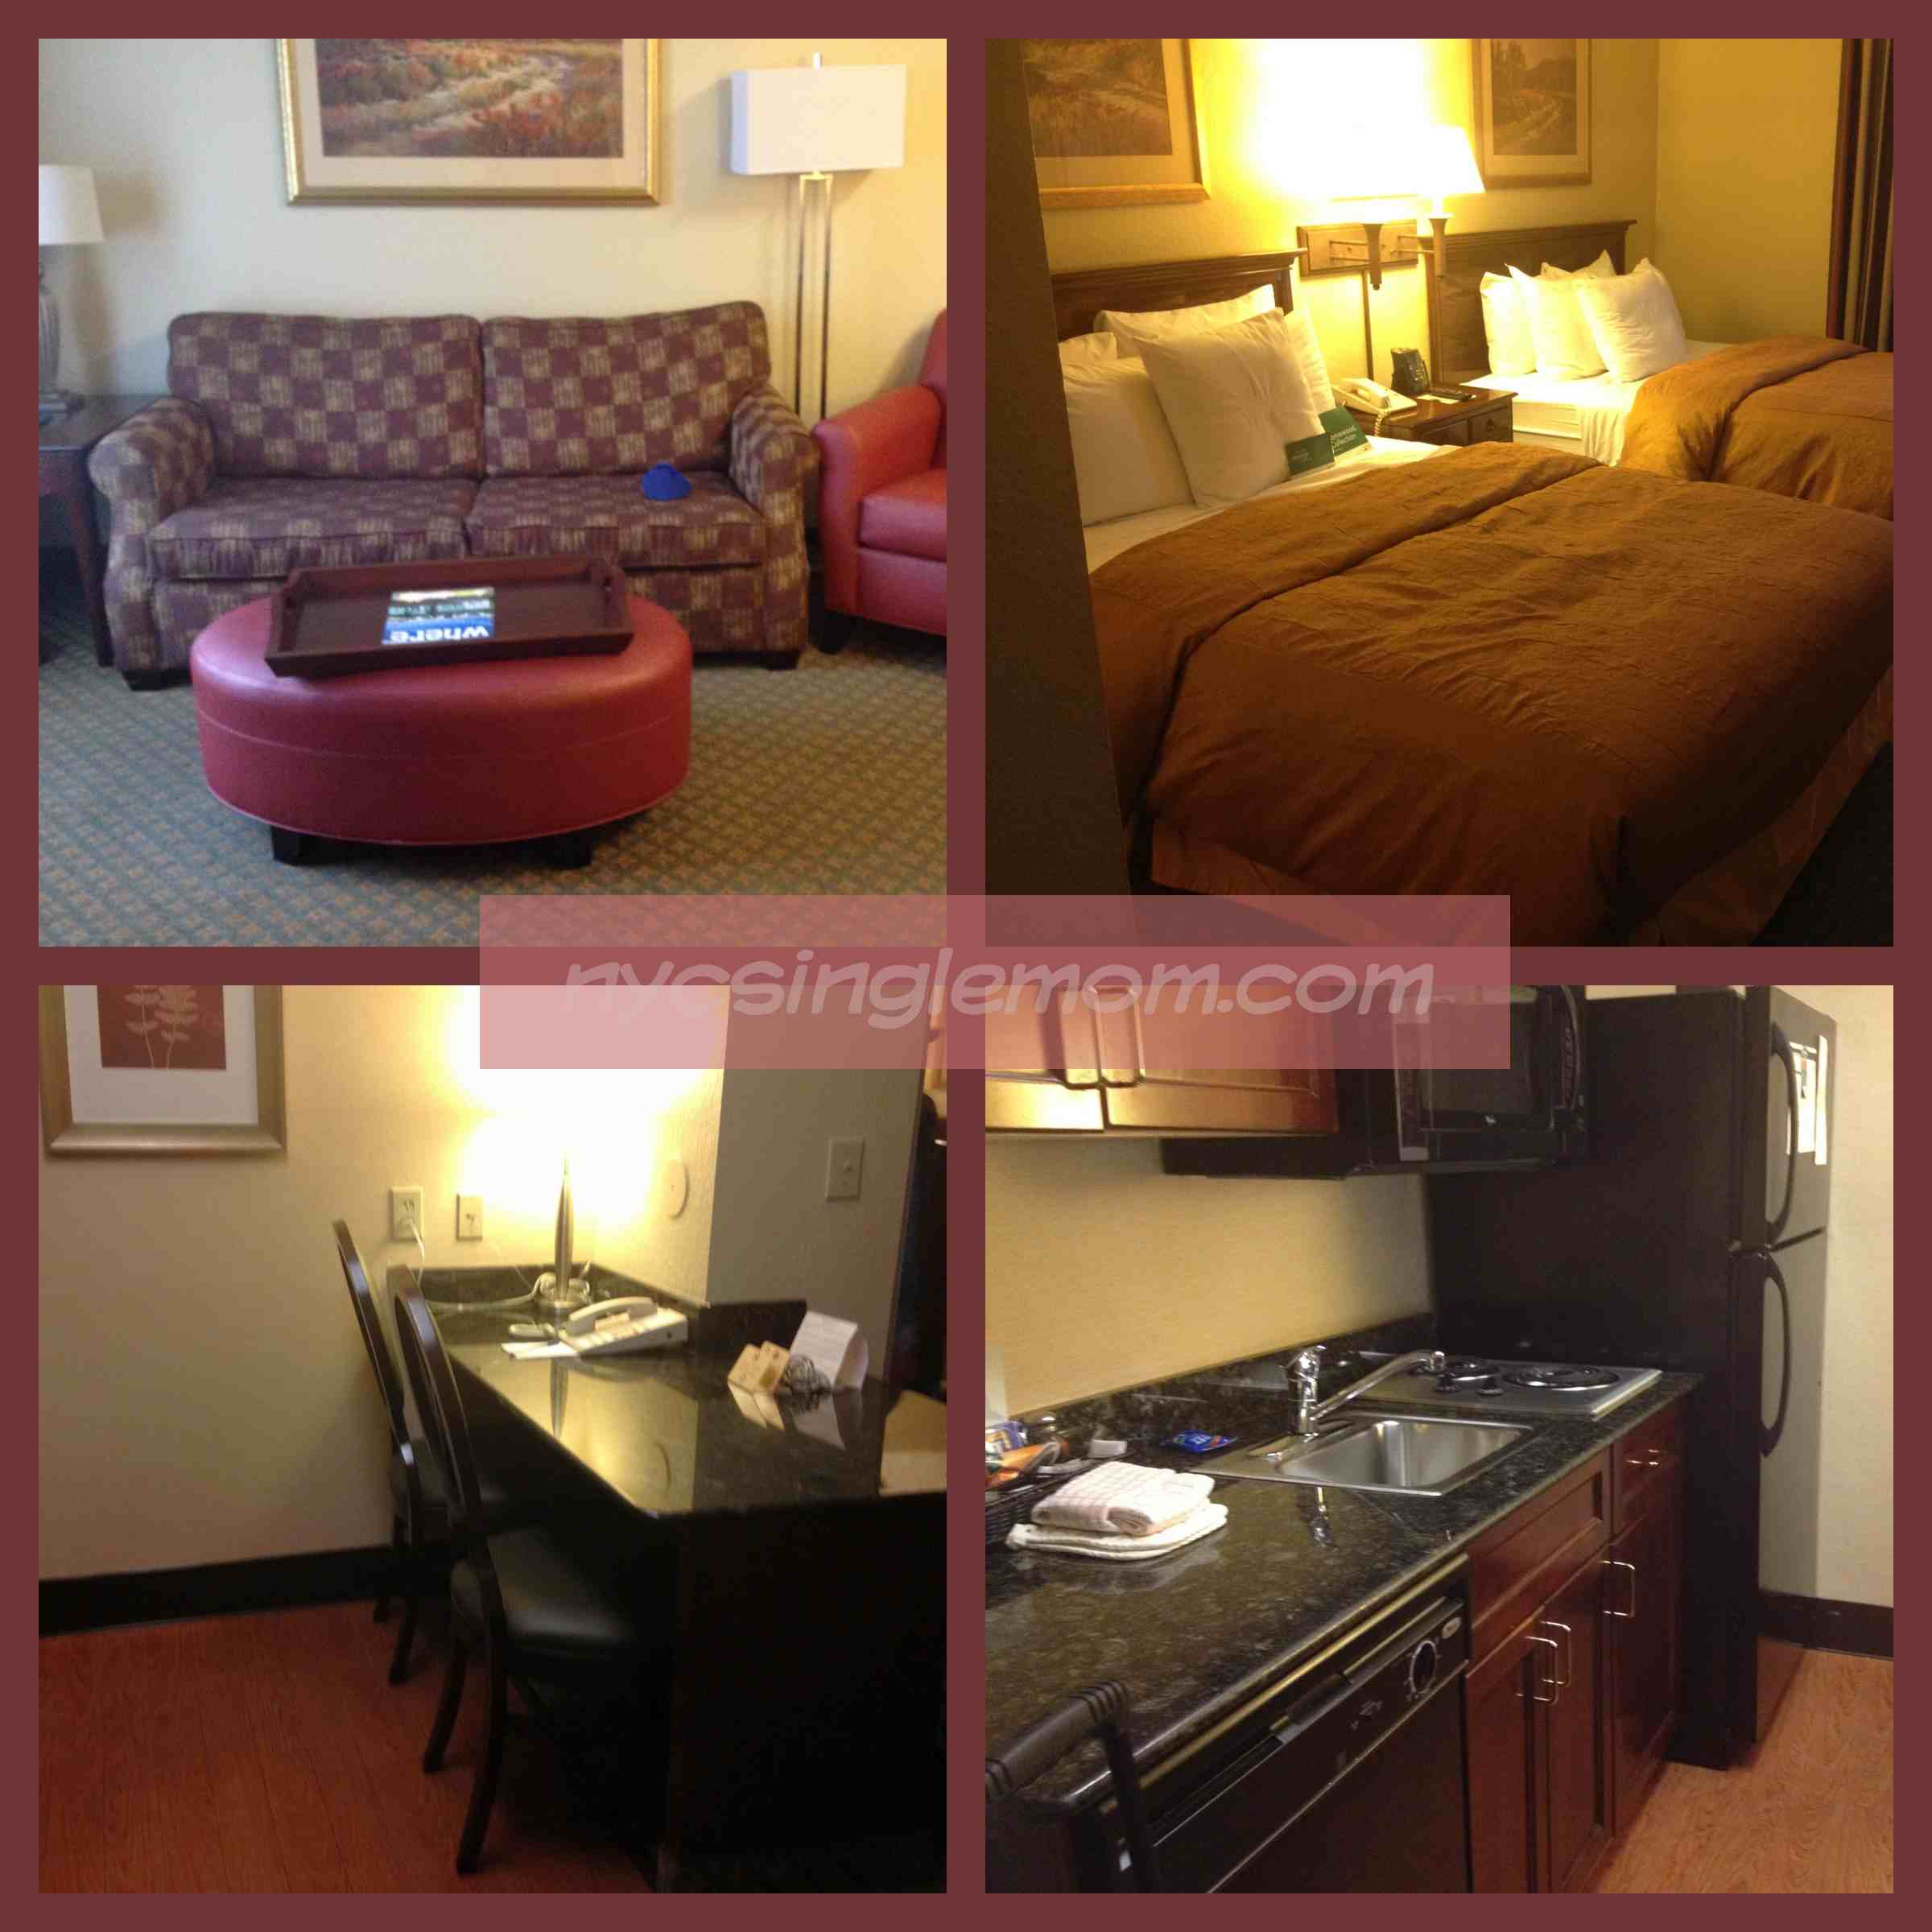 Homewood Suites by Hilton Washington, D.C  Review @HiltonHotels